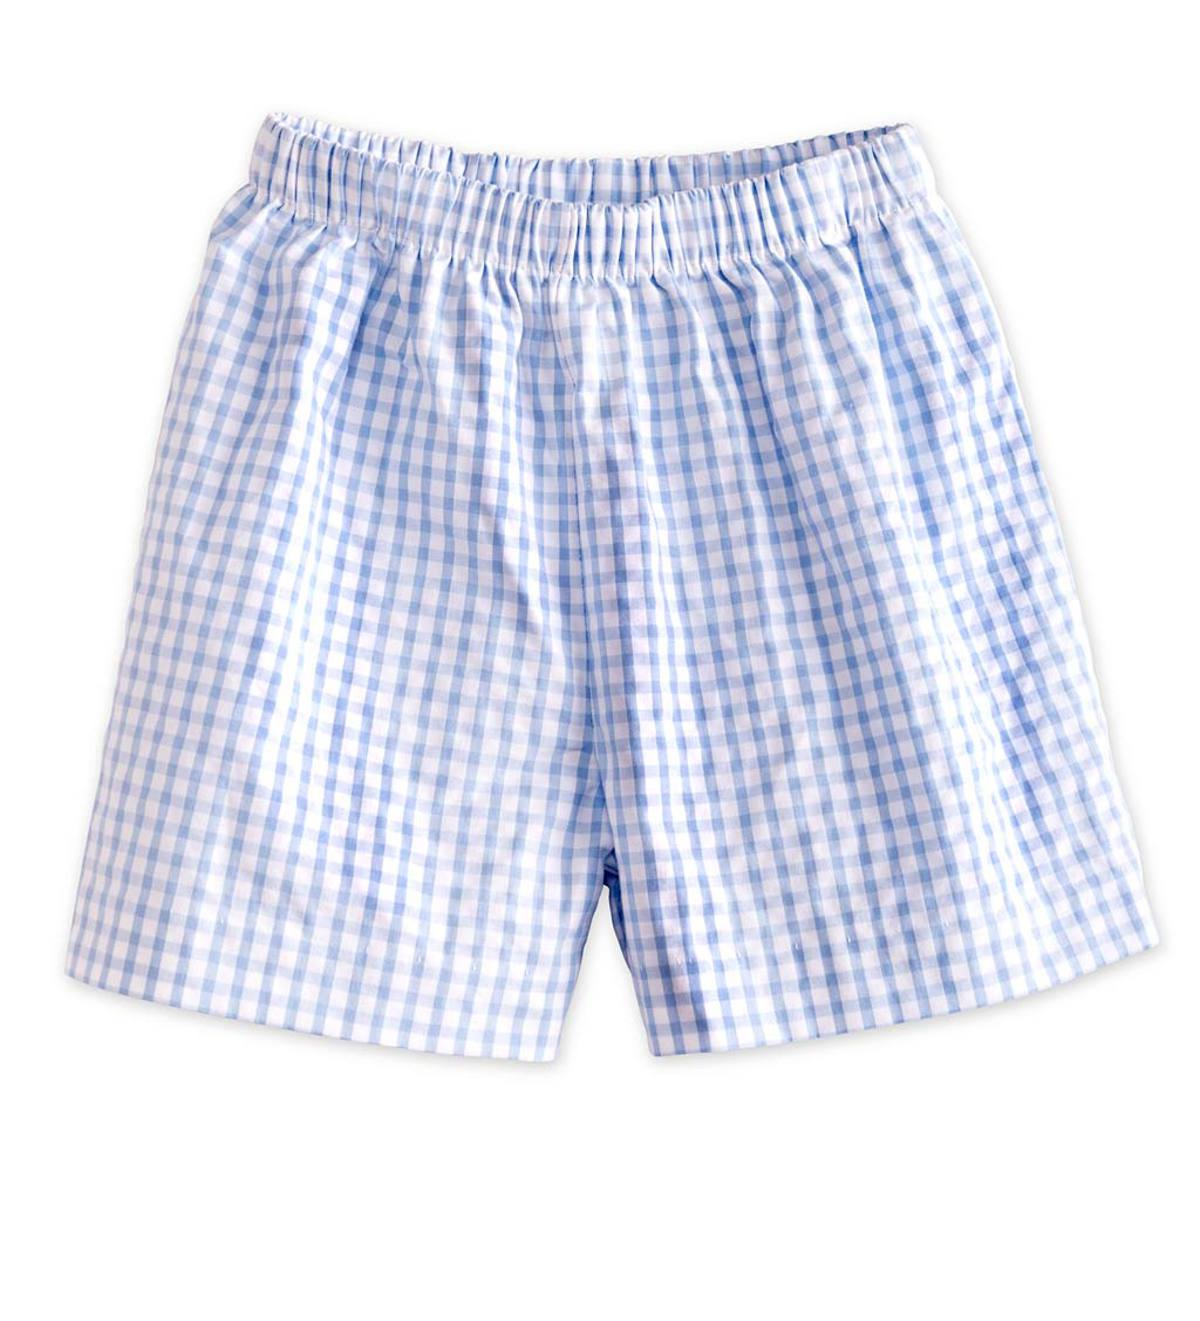 Blue Seersucker Shorts